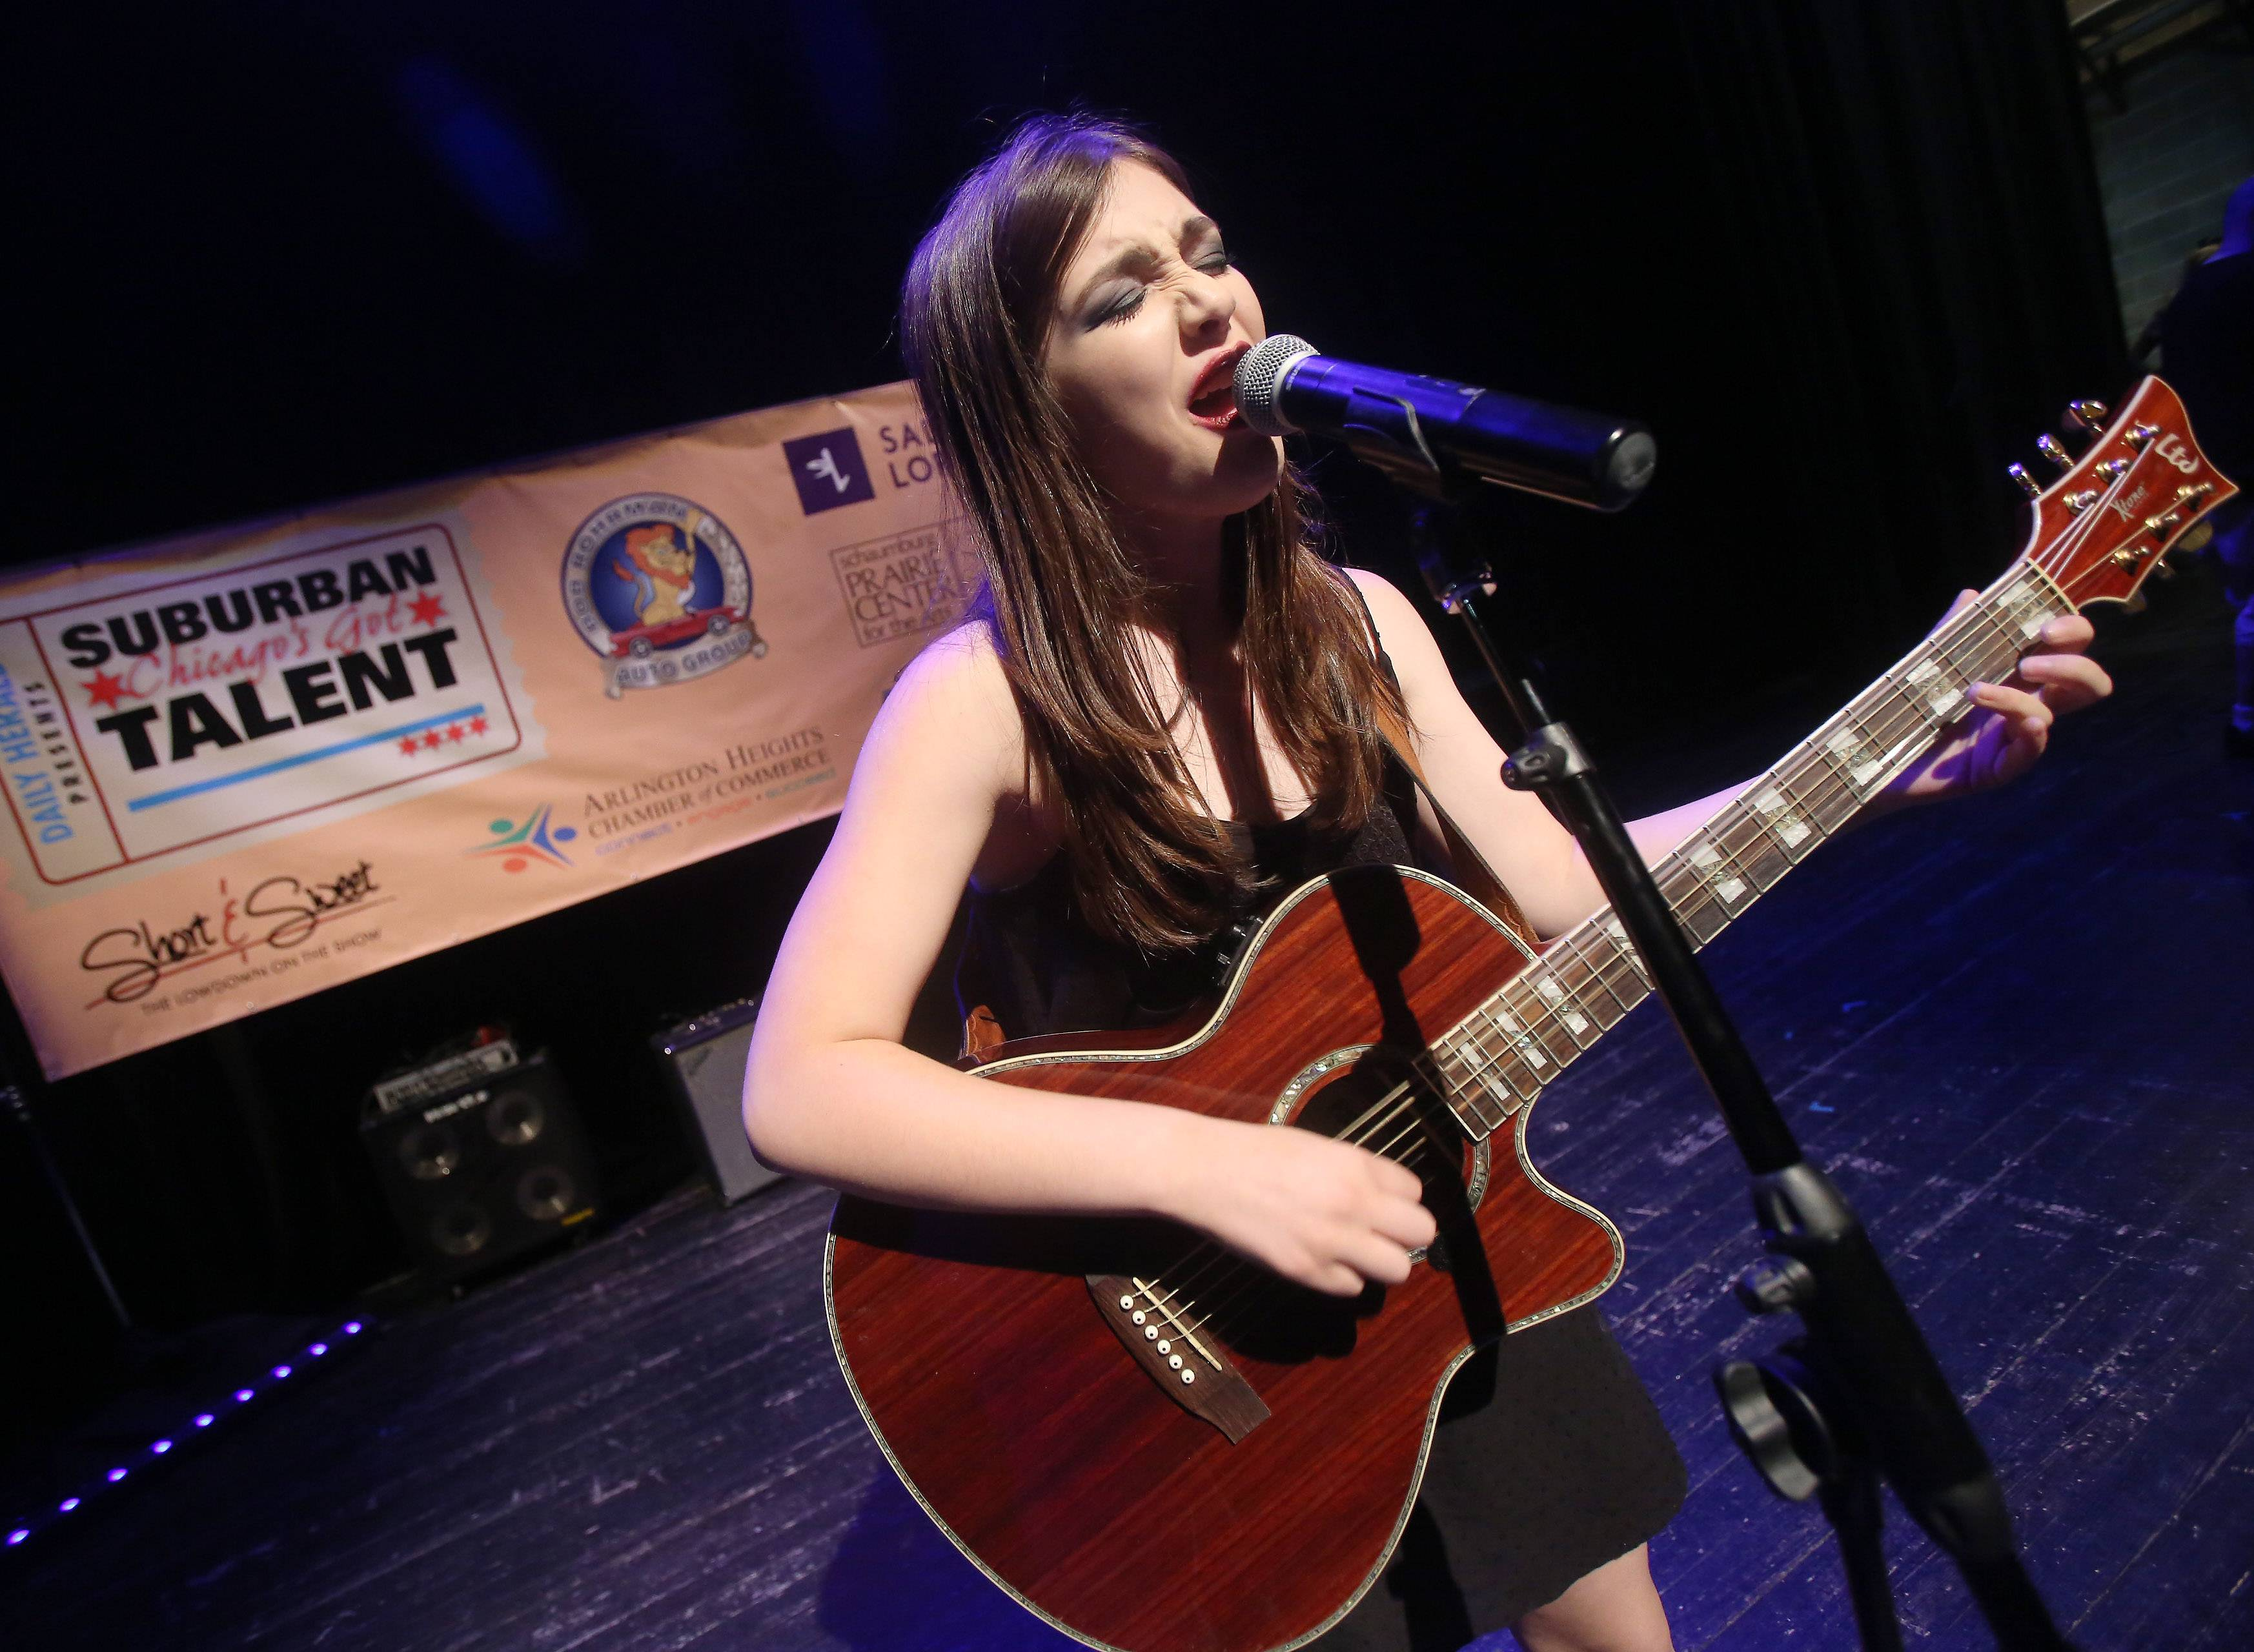 Rhea Garbis of Richmond performs during Suburban Chicago's Got Talent competition at the Prairie Center for the Arts in Schaumburg on Sunday. The top 10 finalists competed for a chance to win the opportunity to perform at the Arcada Theatre in St. Charles.